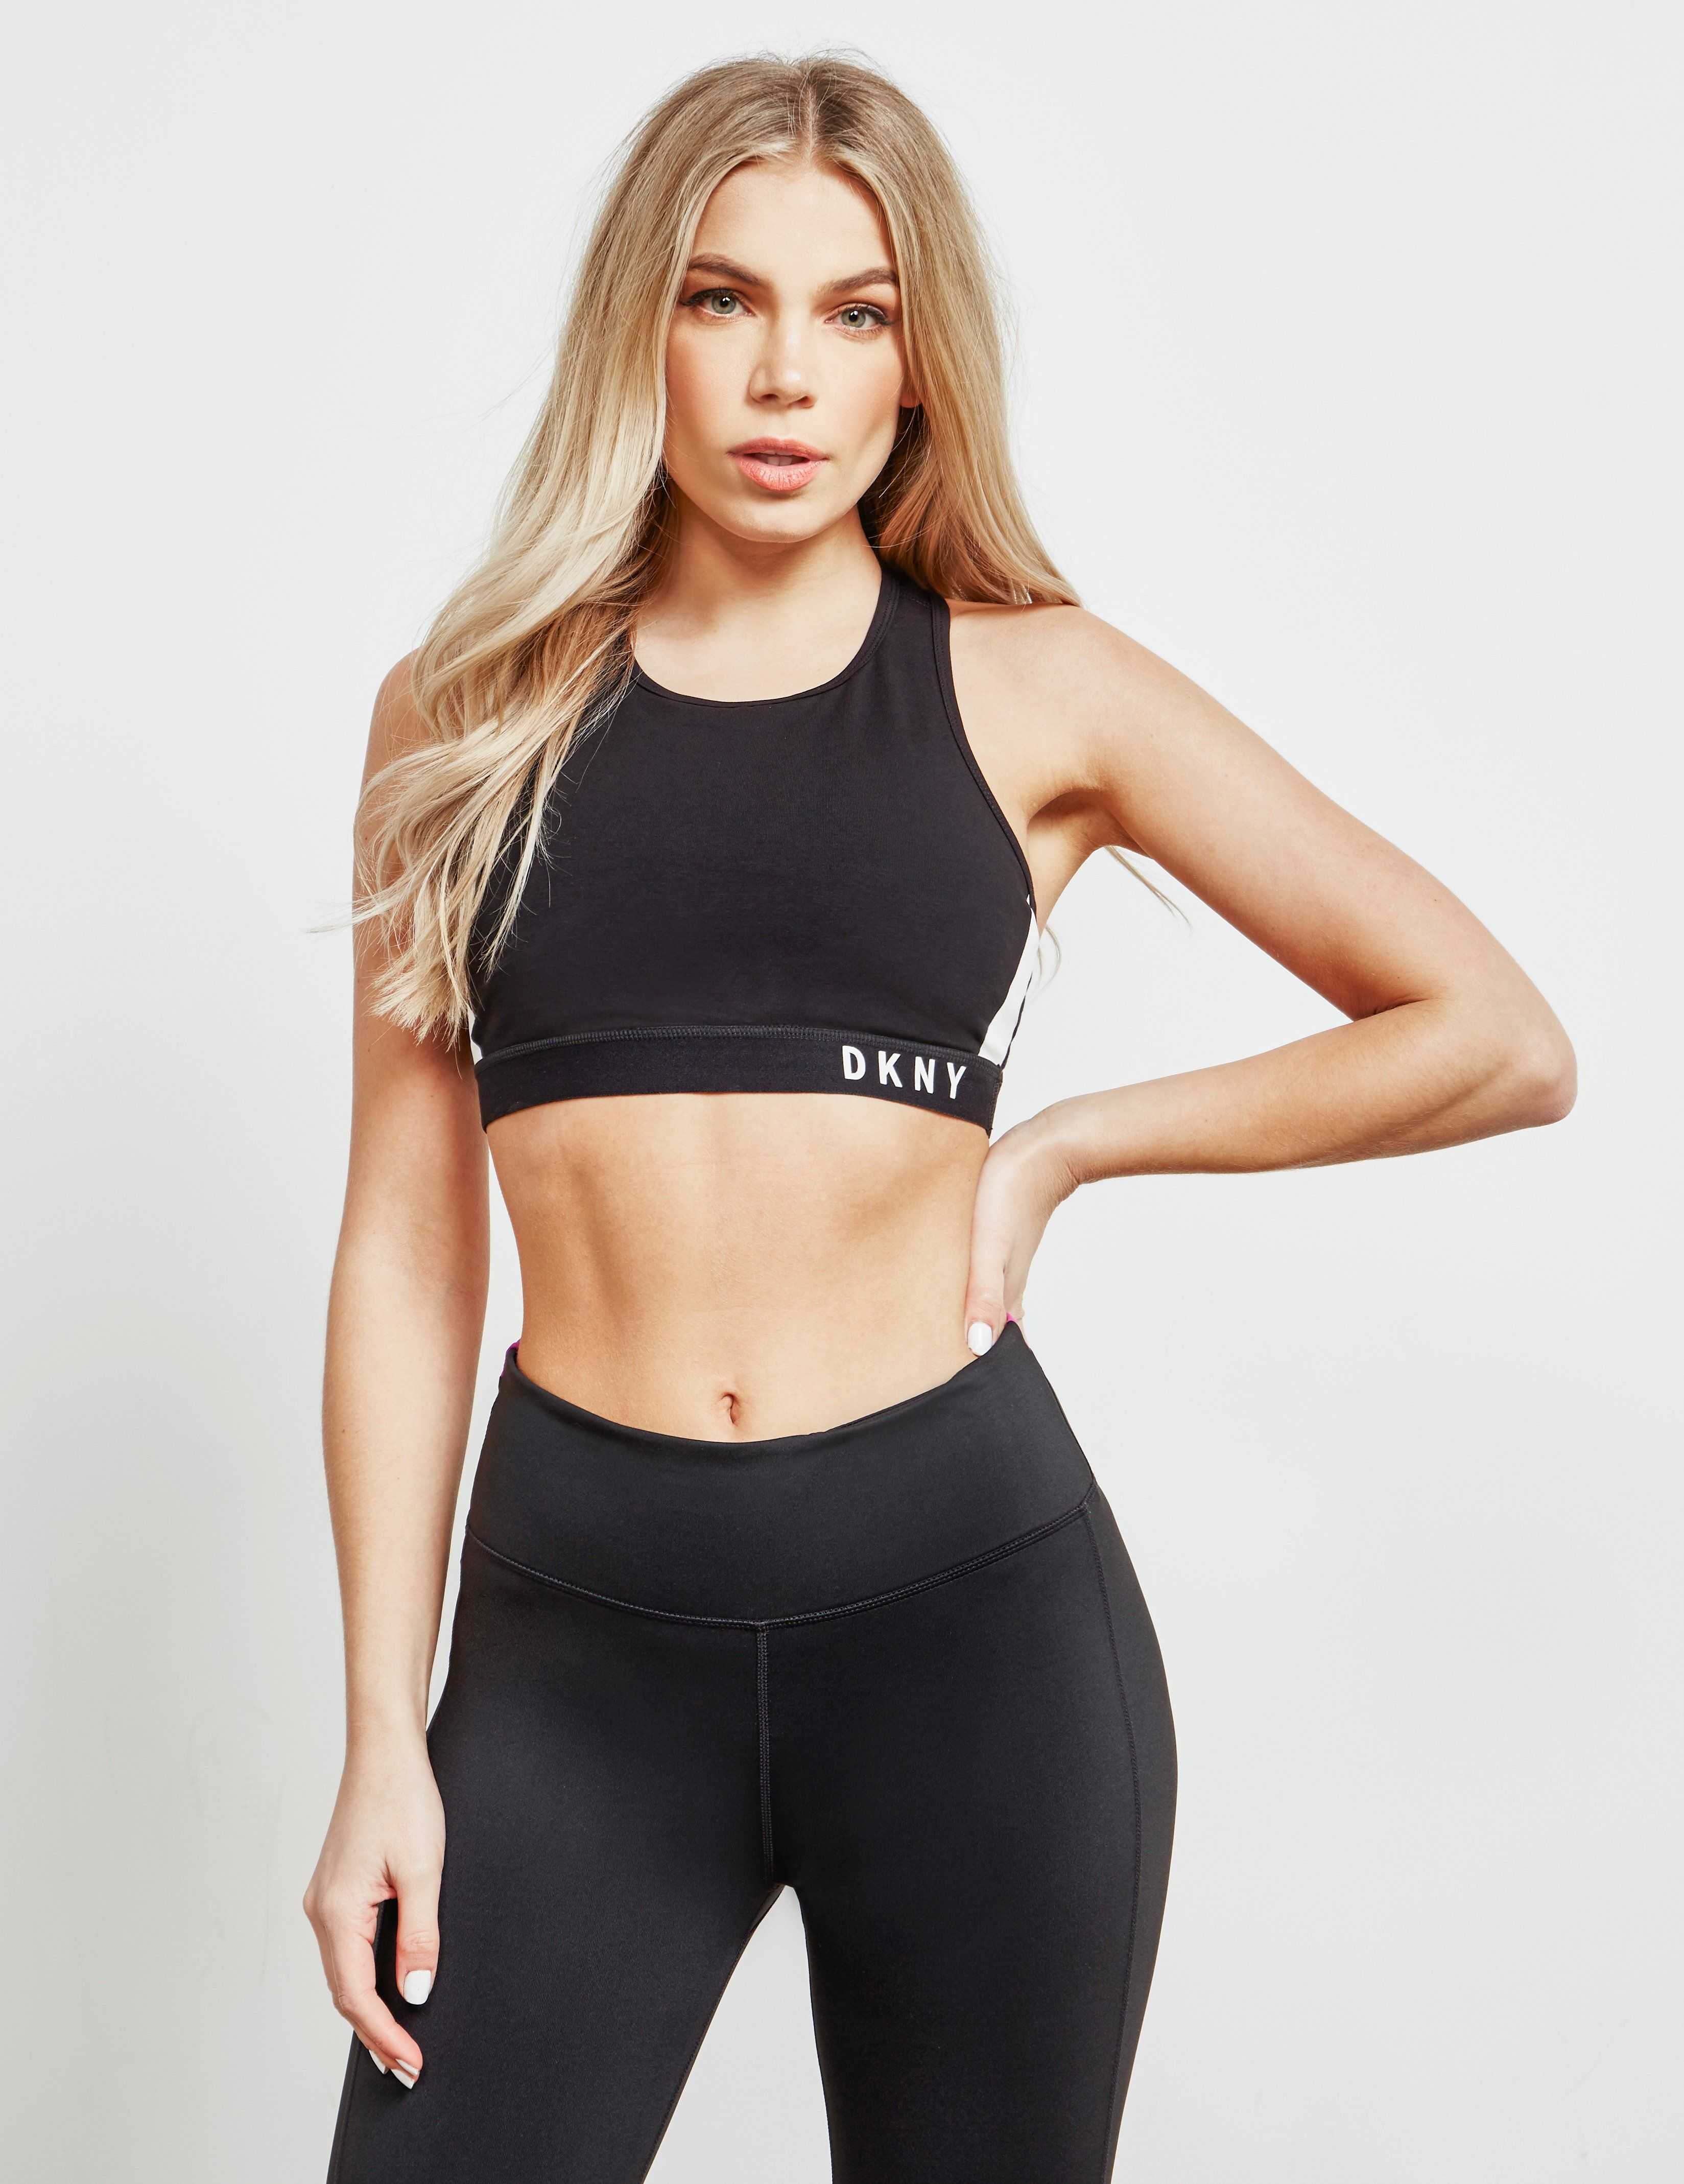 DKNY Knockout Crop Top - Online Exclusive